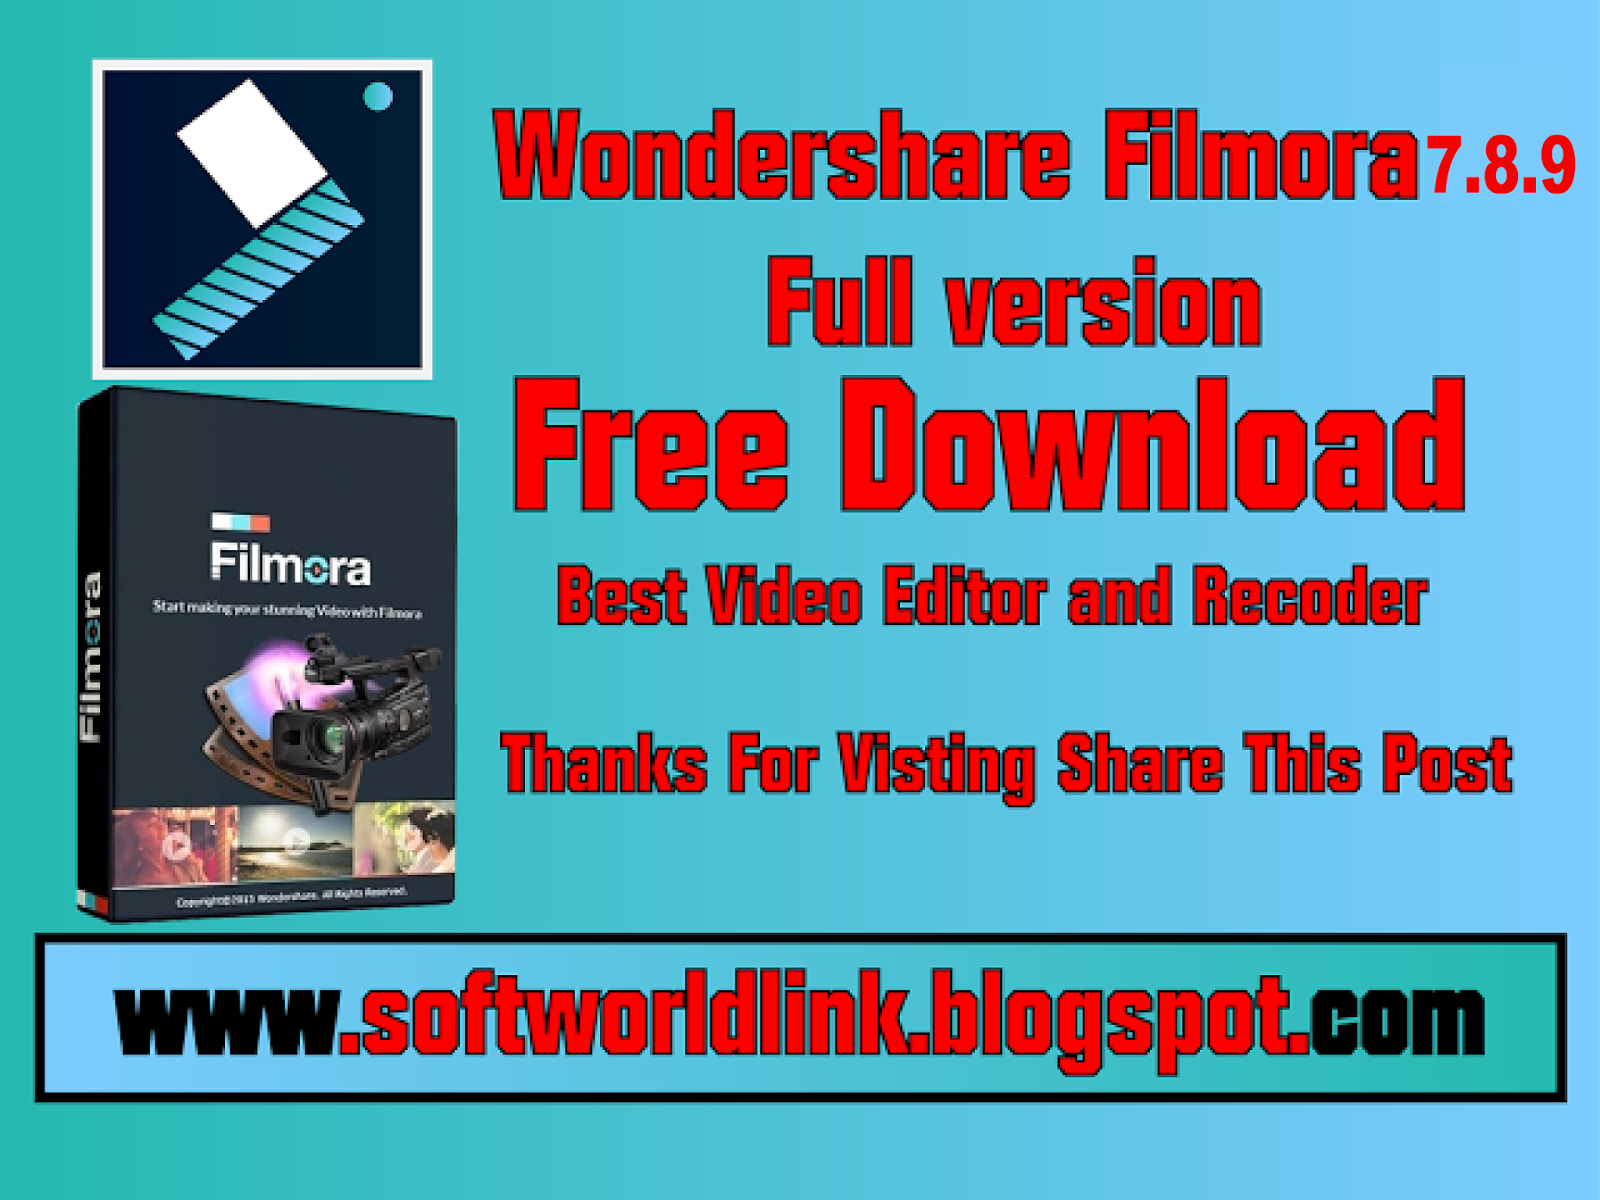 Wondershare Filmora 7 8 9 Full Version With patch|Free